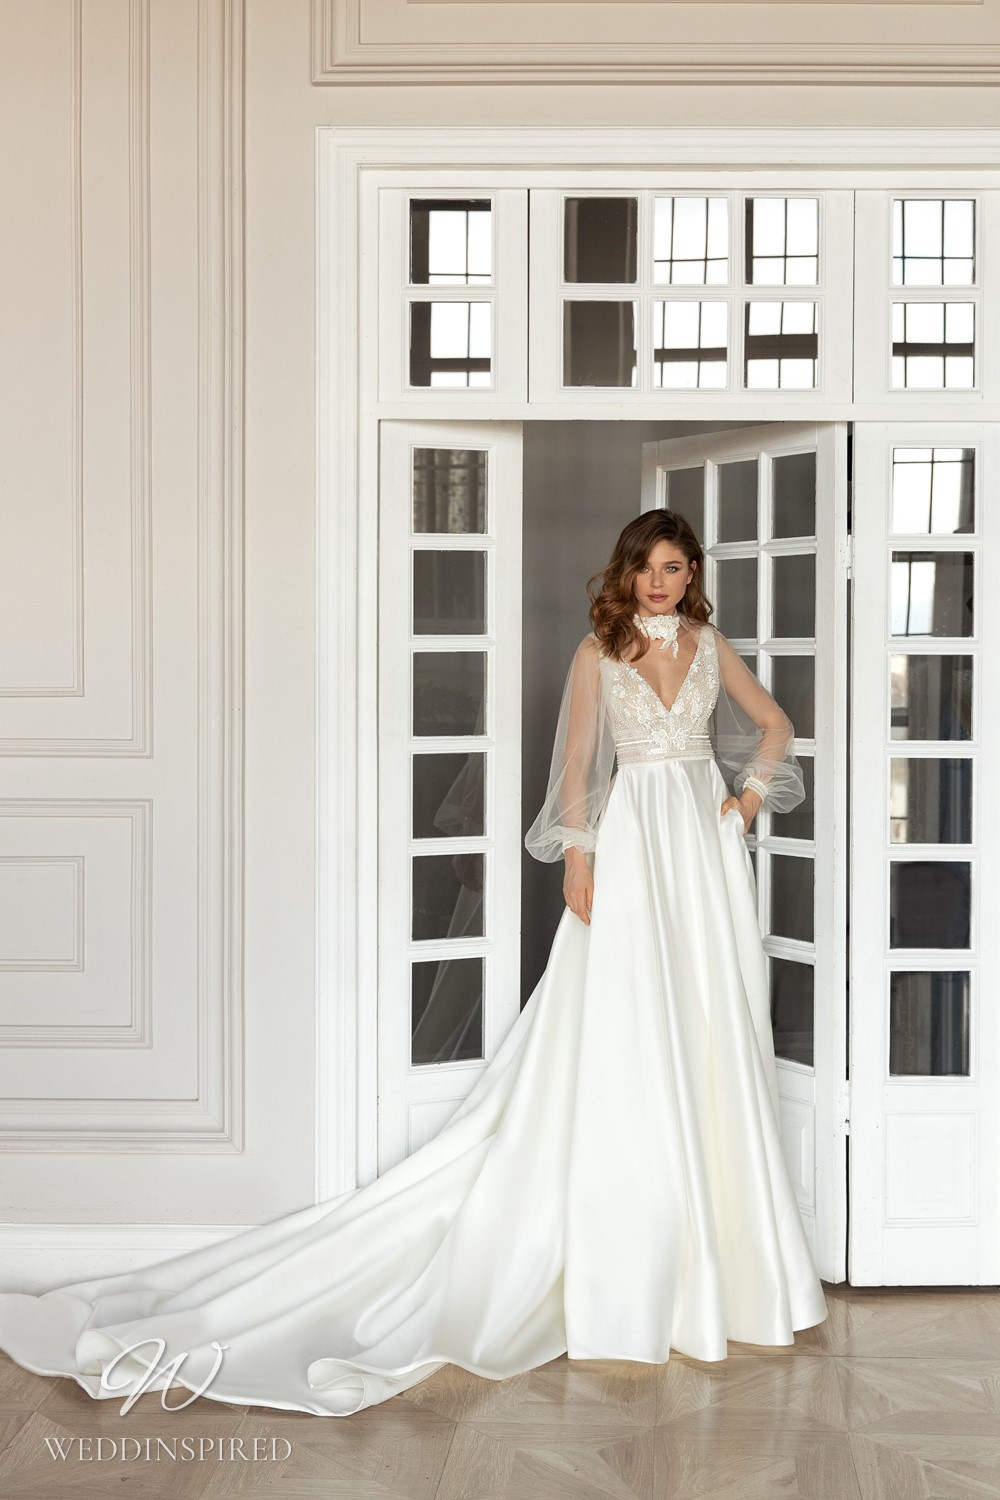 An Eva Lendel 2021 silk and lace A-line wedding dress with long sleeves and pockets